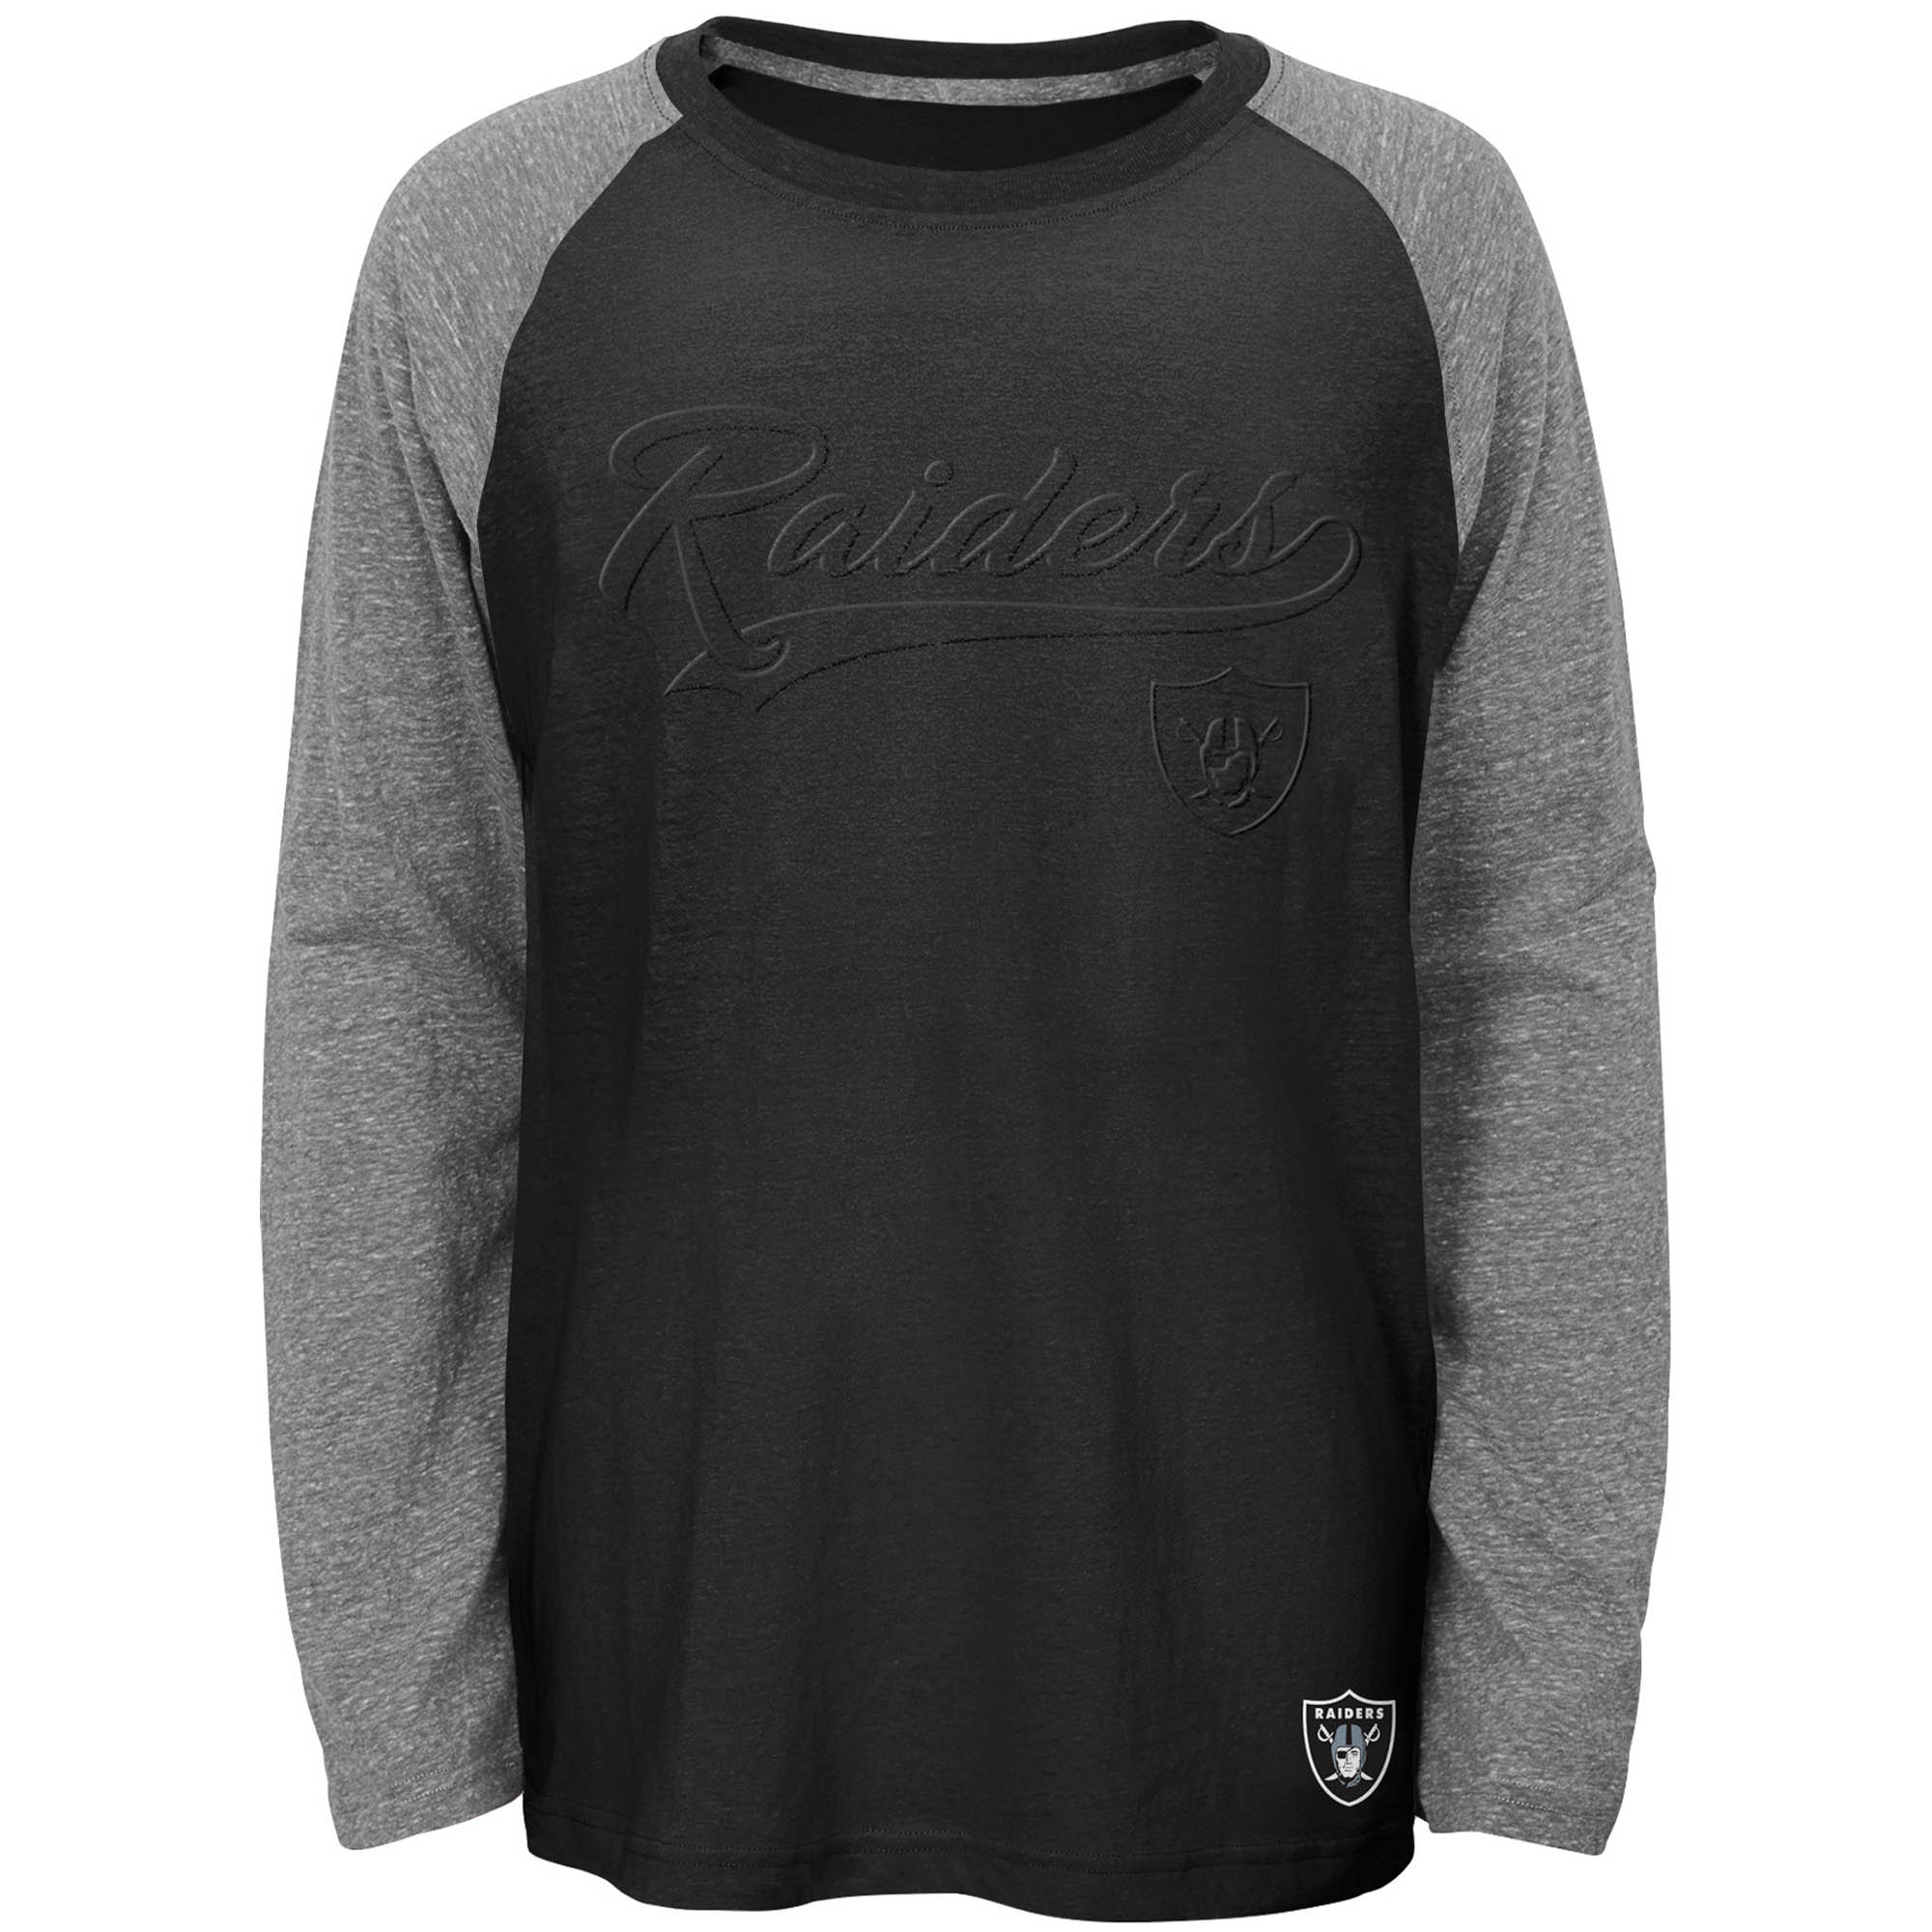 Youth Black Oakland Raiders Long Sleeve Raglan T-Shirt